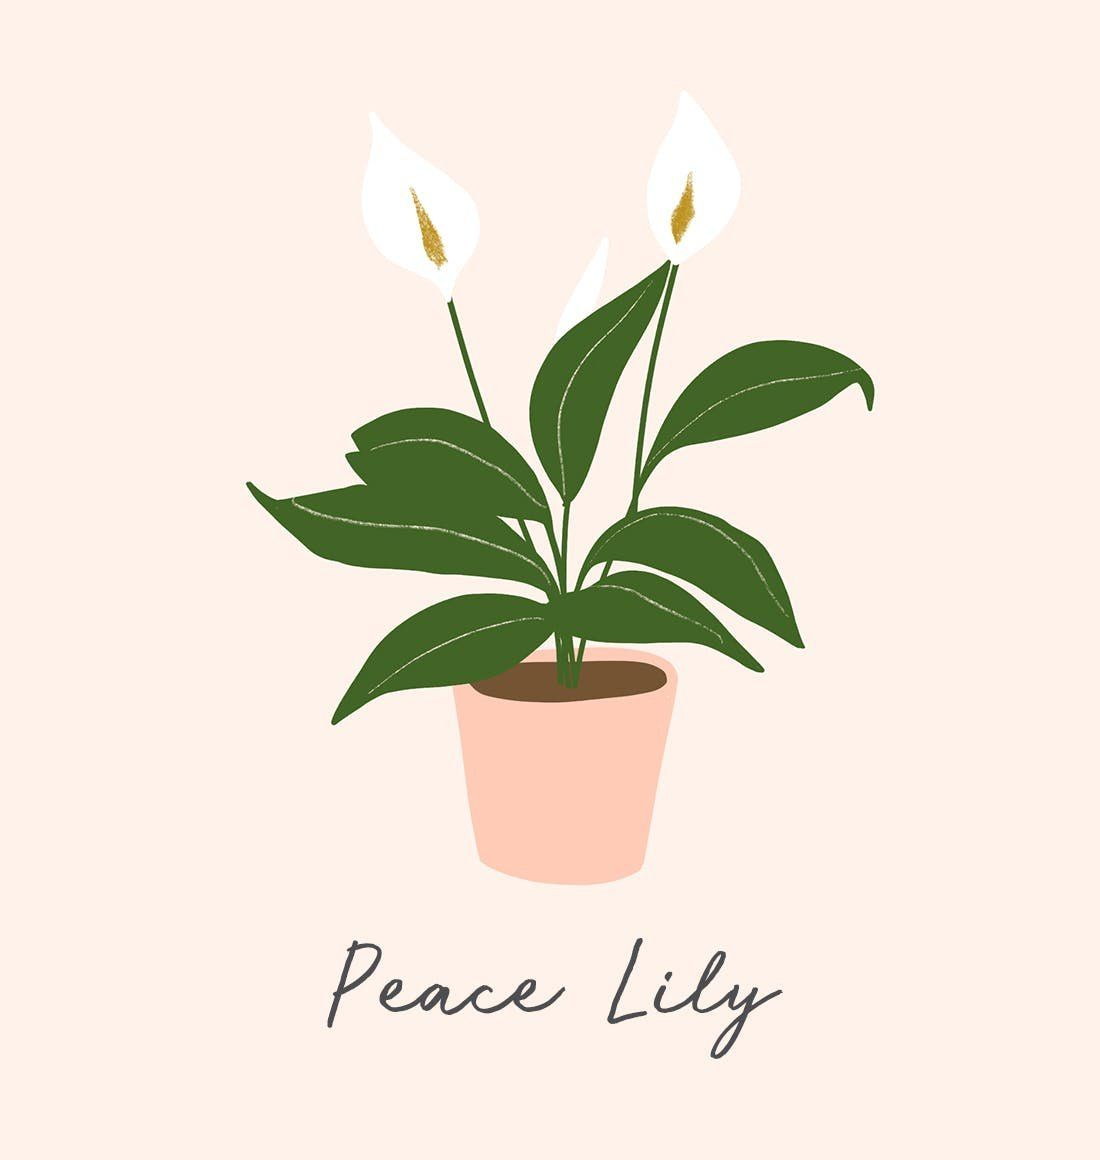 14 houseplants that are dangerous for your pets and kiddos peace lilies may be beautiful but they are poisonous to pets humans izmirmasajfo